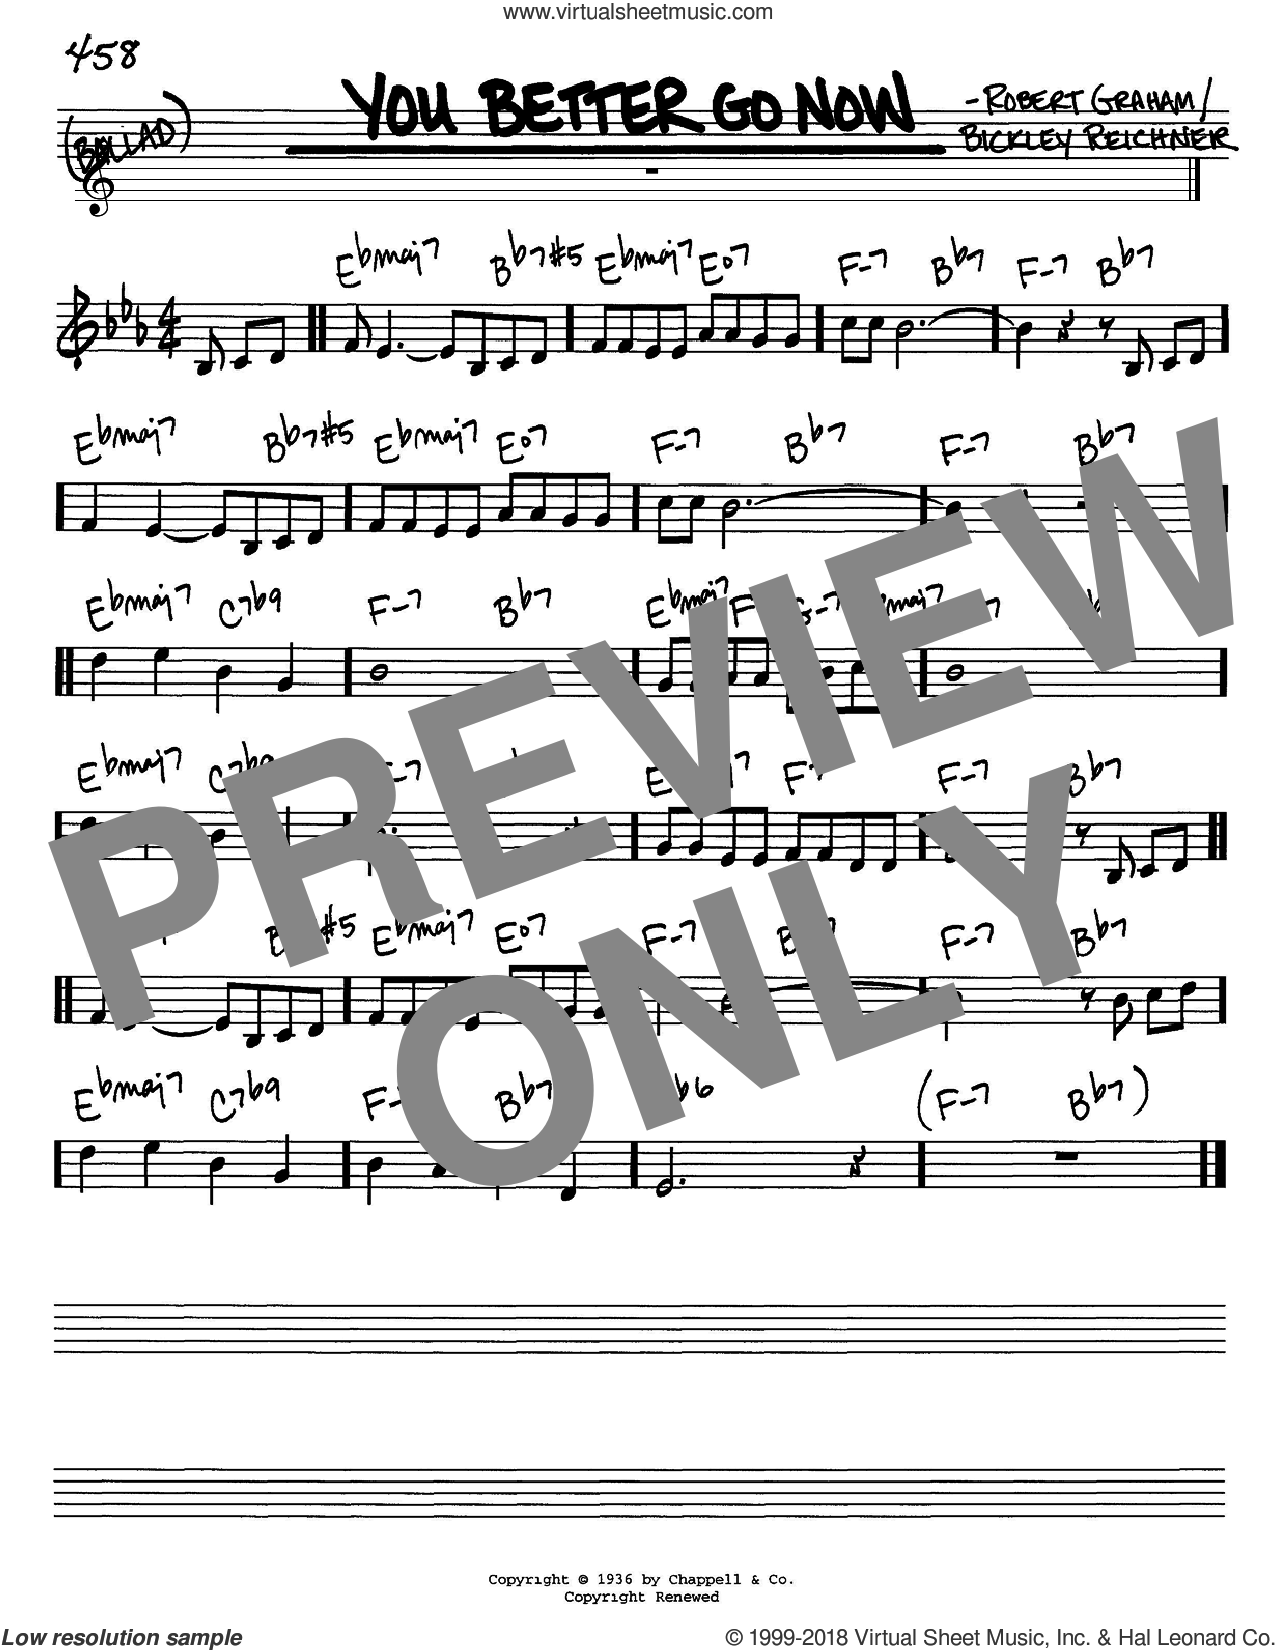 You Better Go Now sheet music for voice and other instruments (C) by Robert Graham. Score Image Preview.